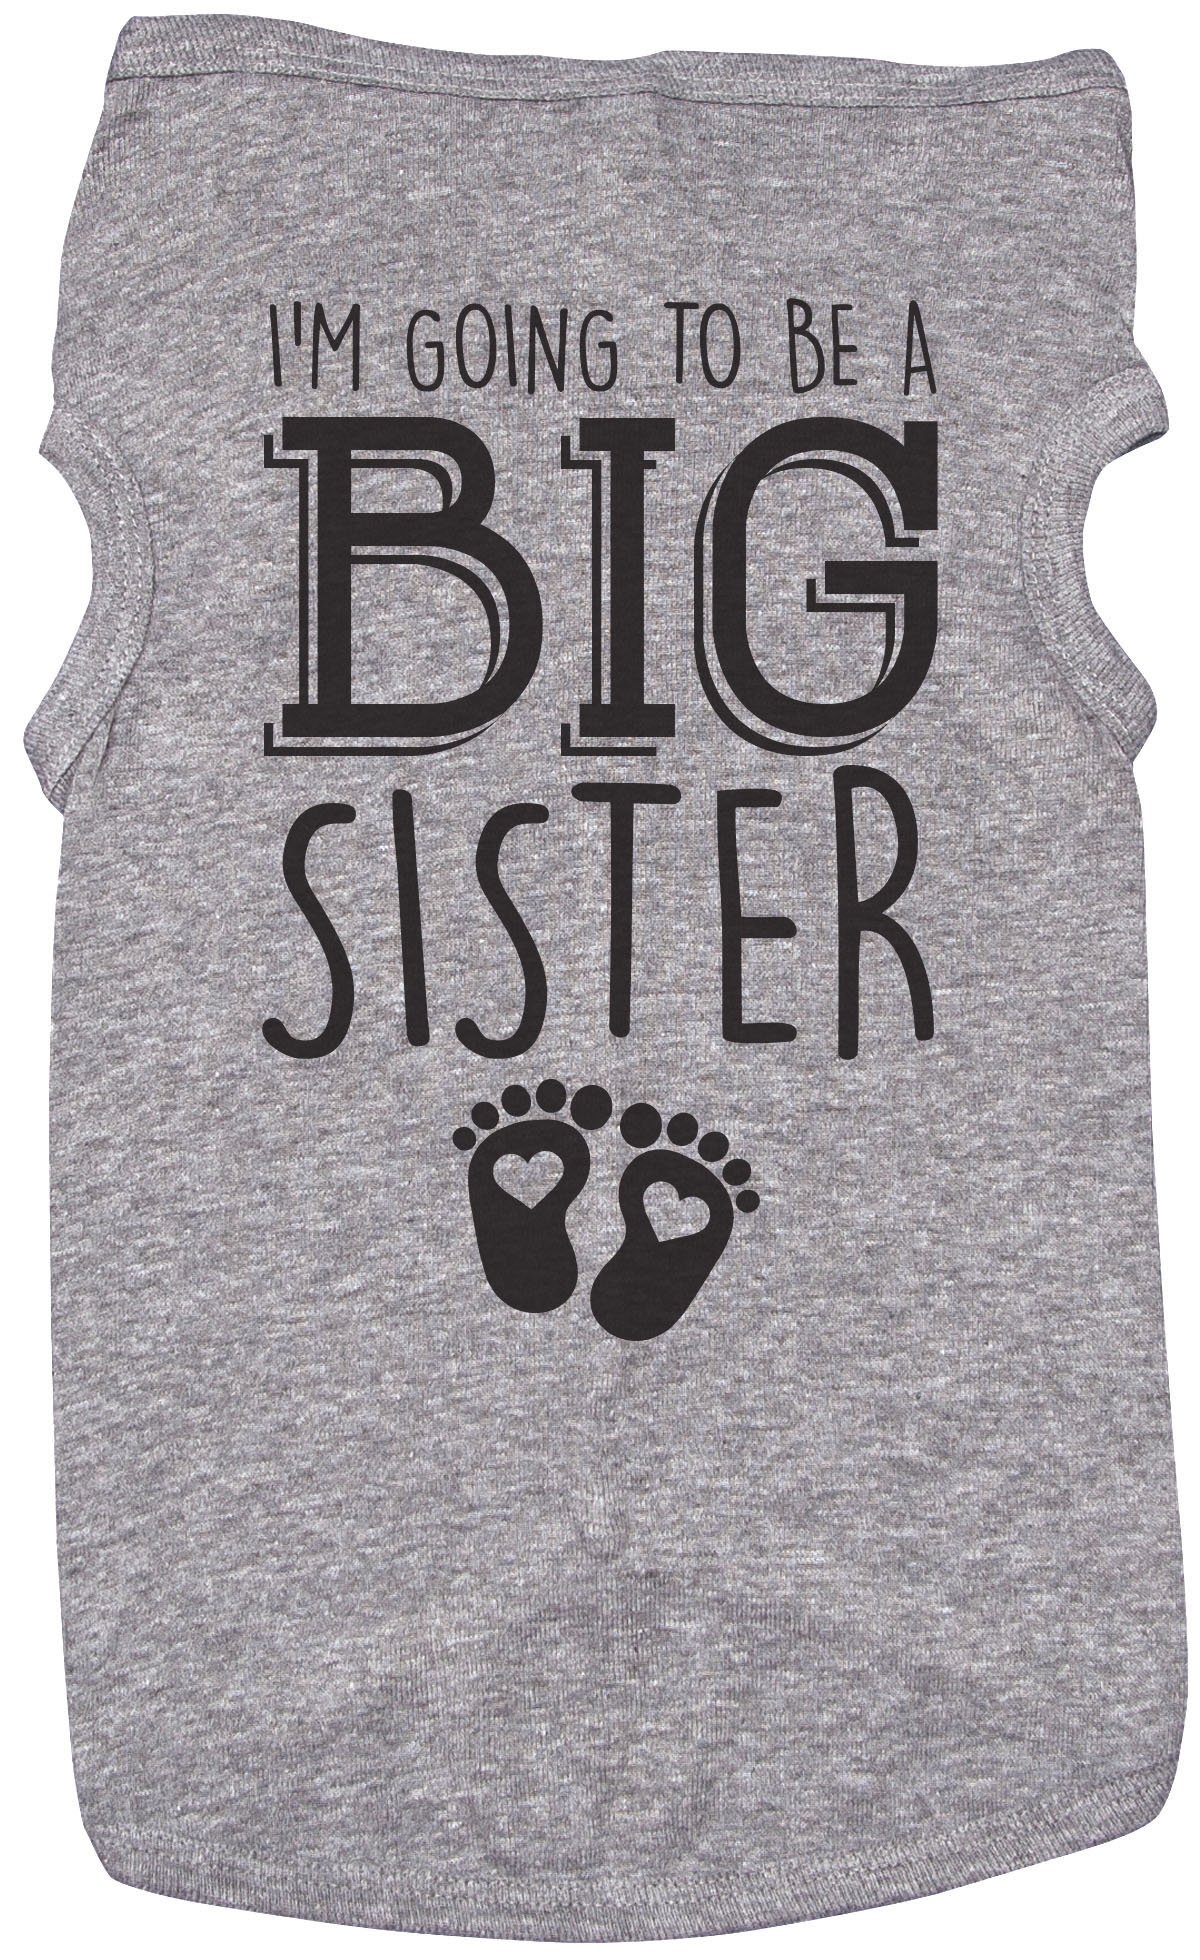 Big Sister Shirt for Dogs/I'M GOING TO BE A BIG SISTER/Puppy Tshirt/Girls (XL)